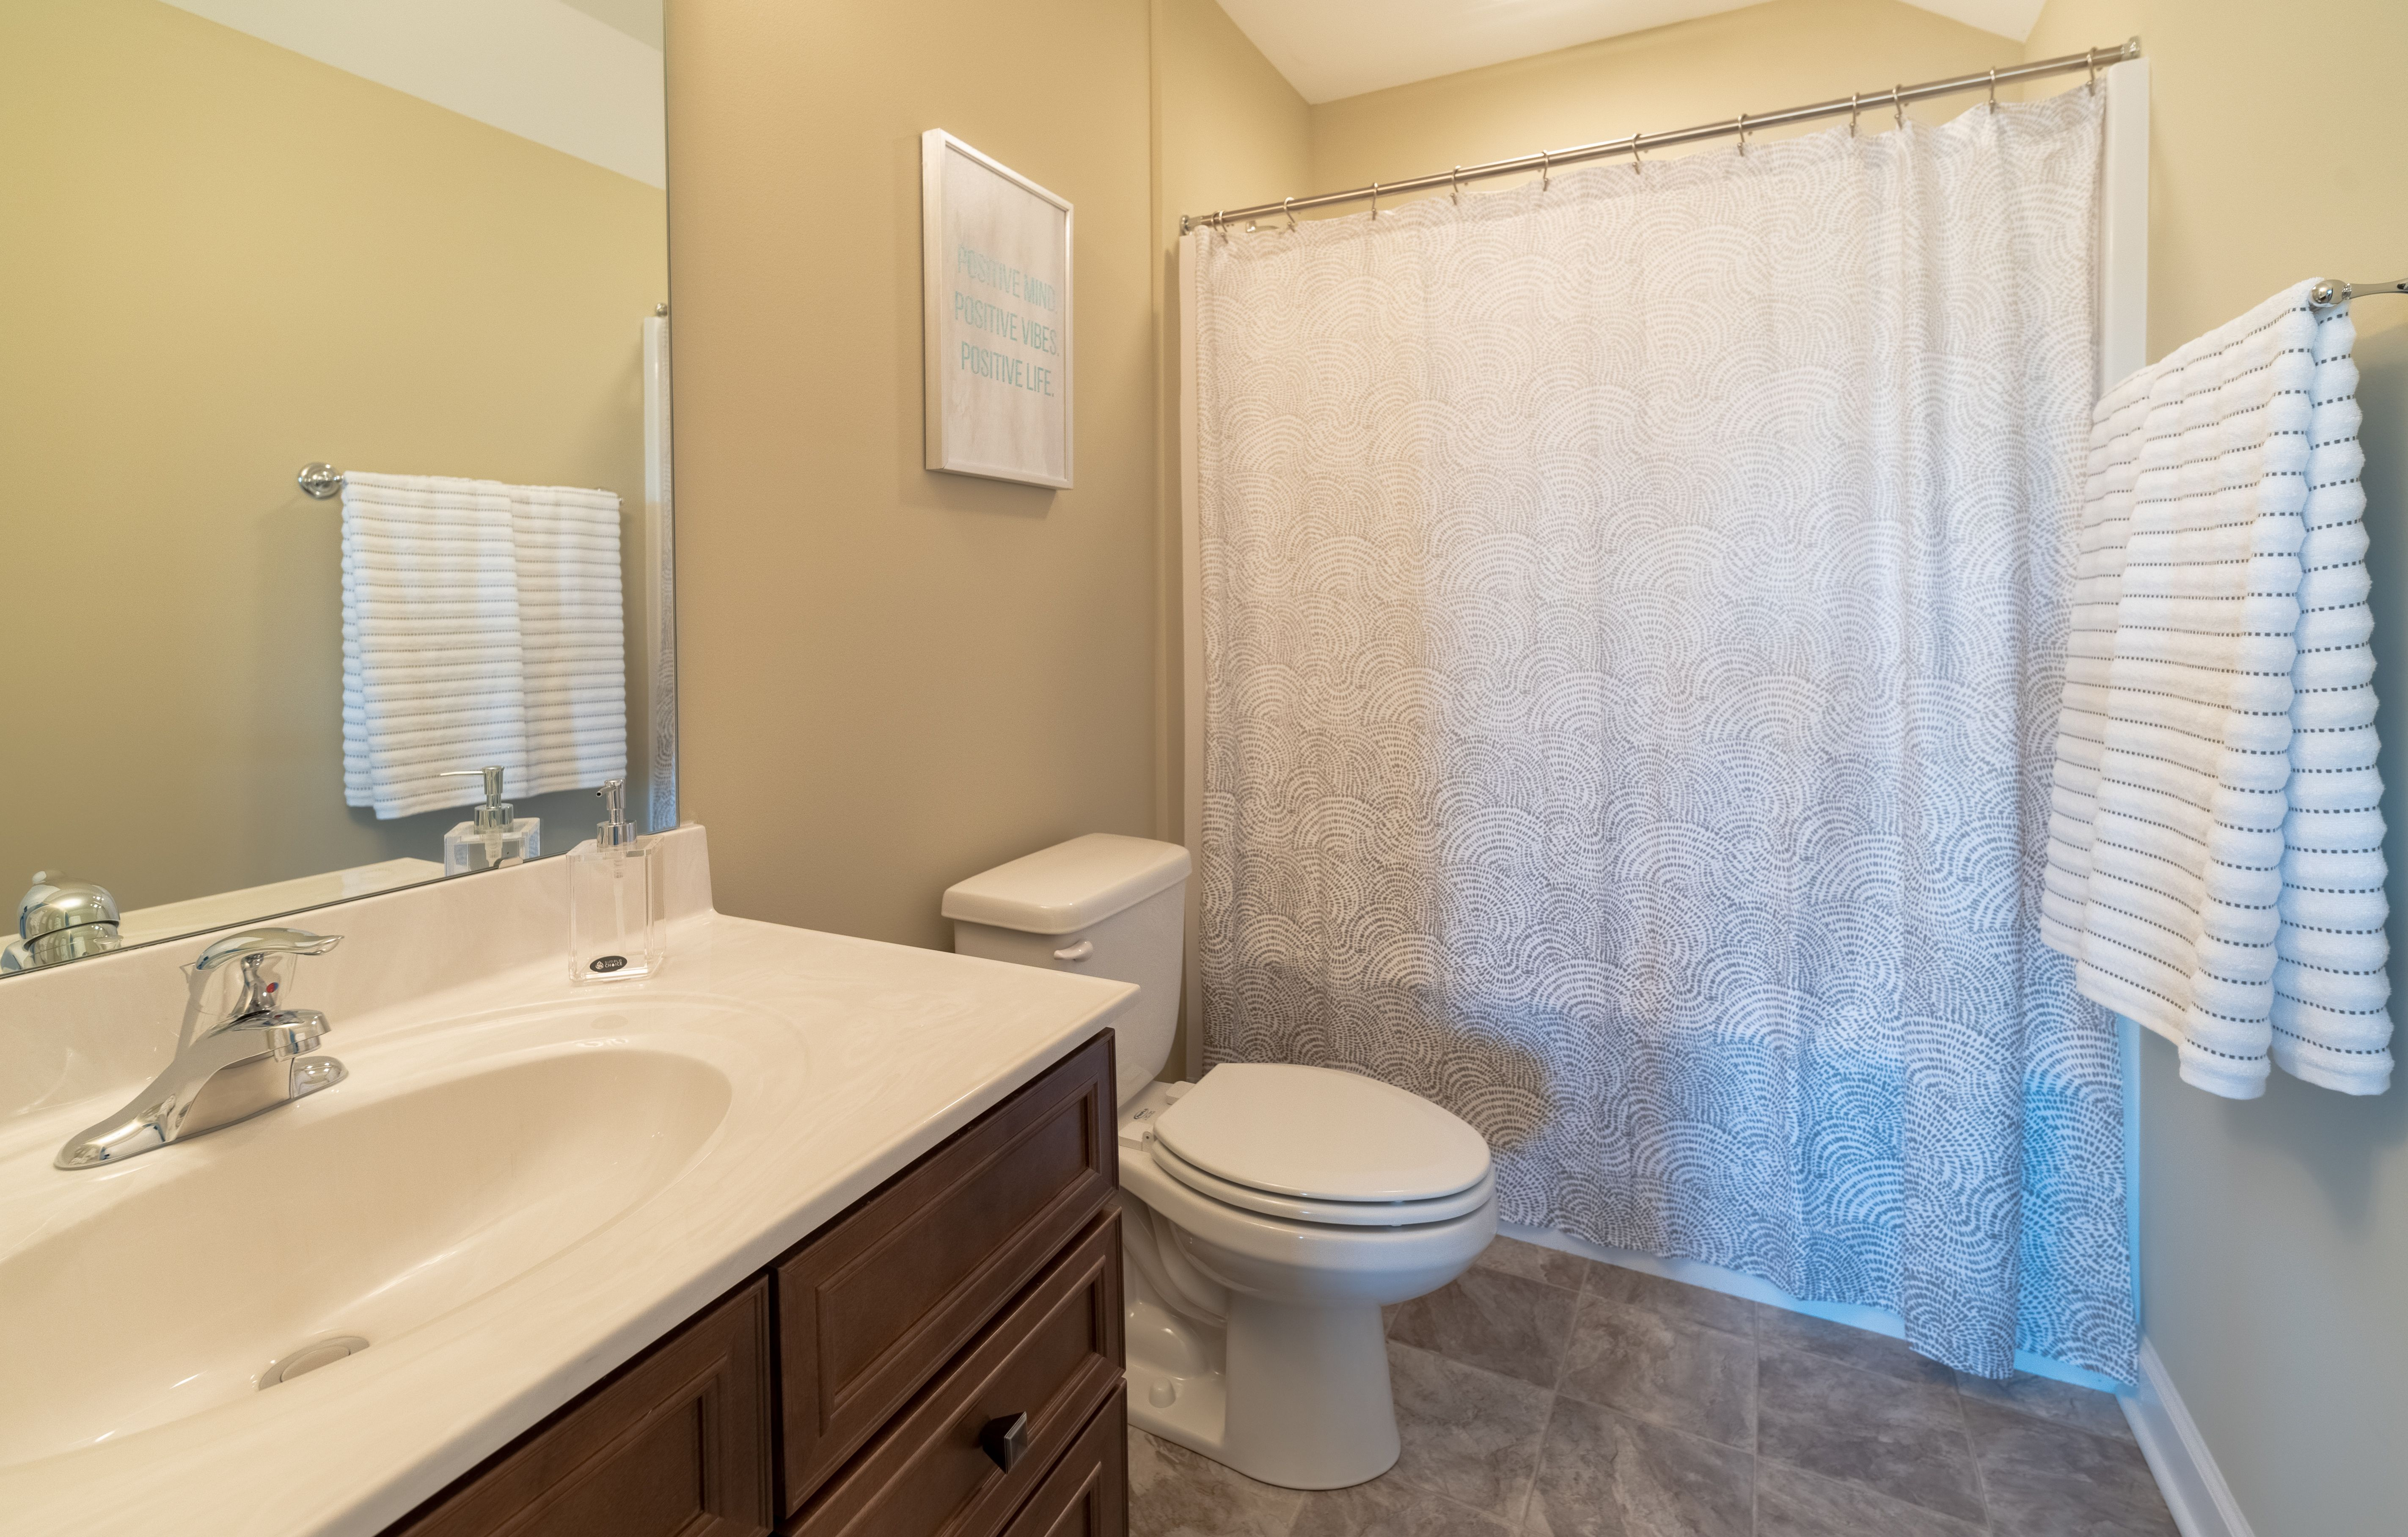 Bathroom featured in The Courtland By Stateson Homes in Roanoke, VA